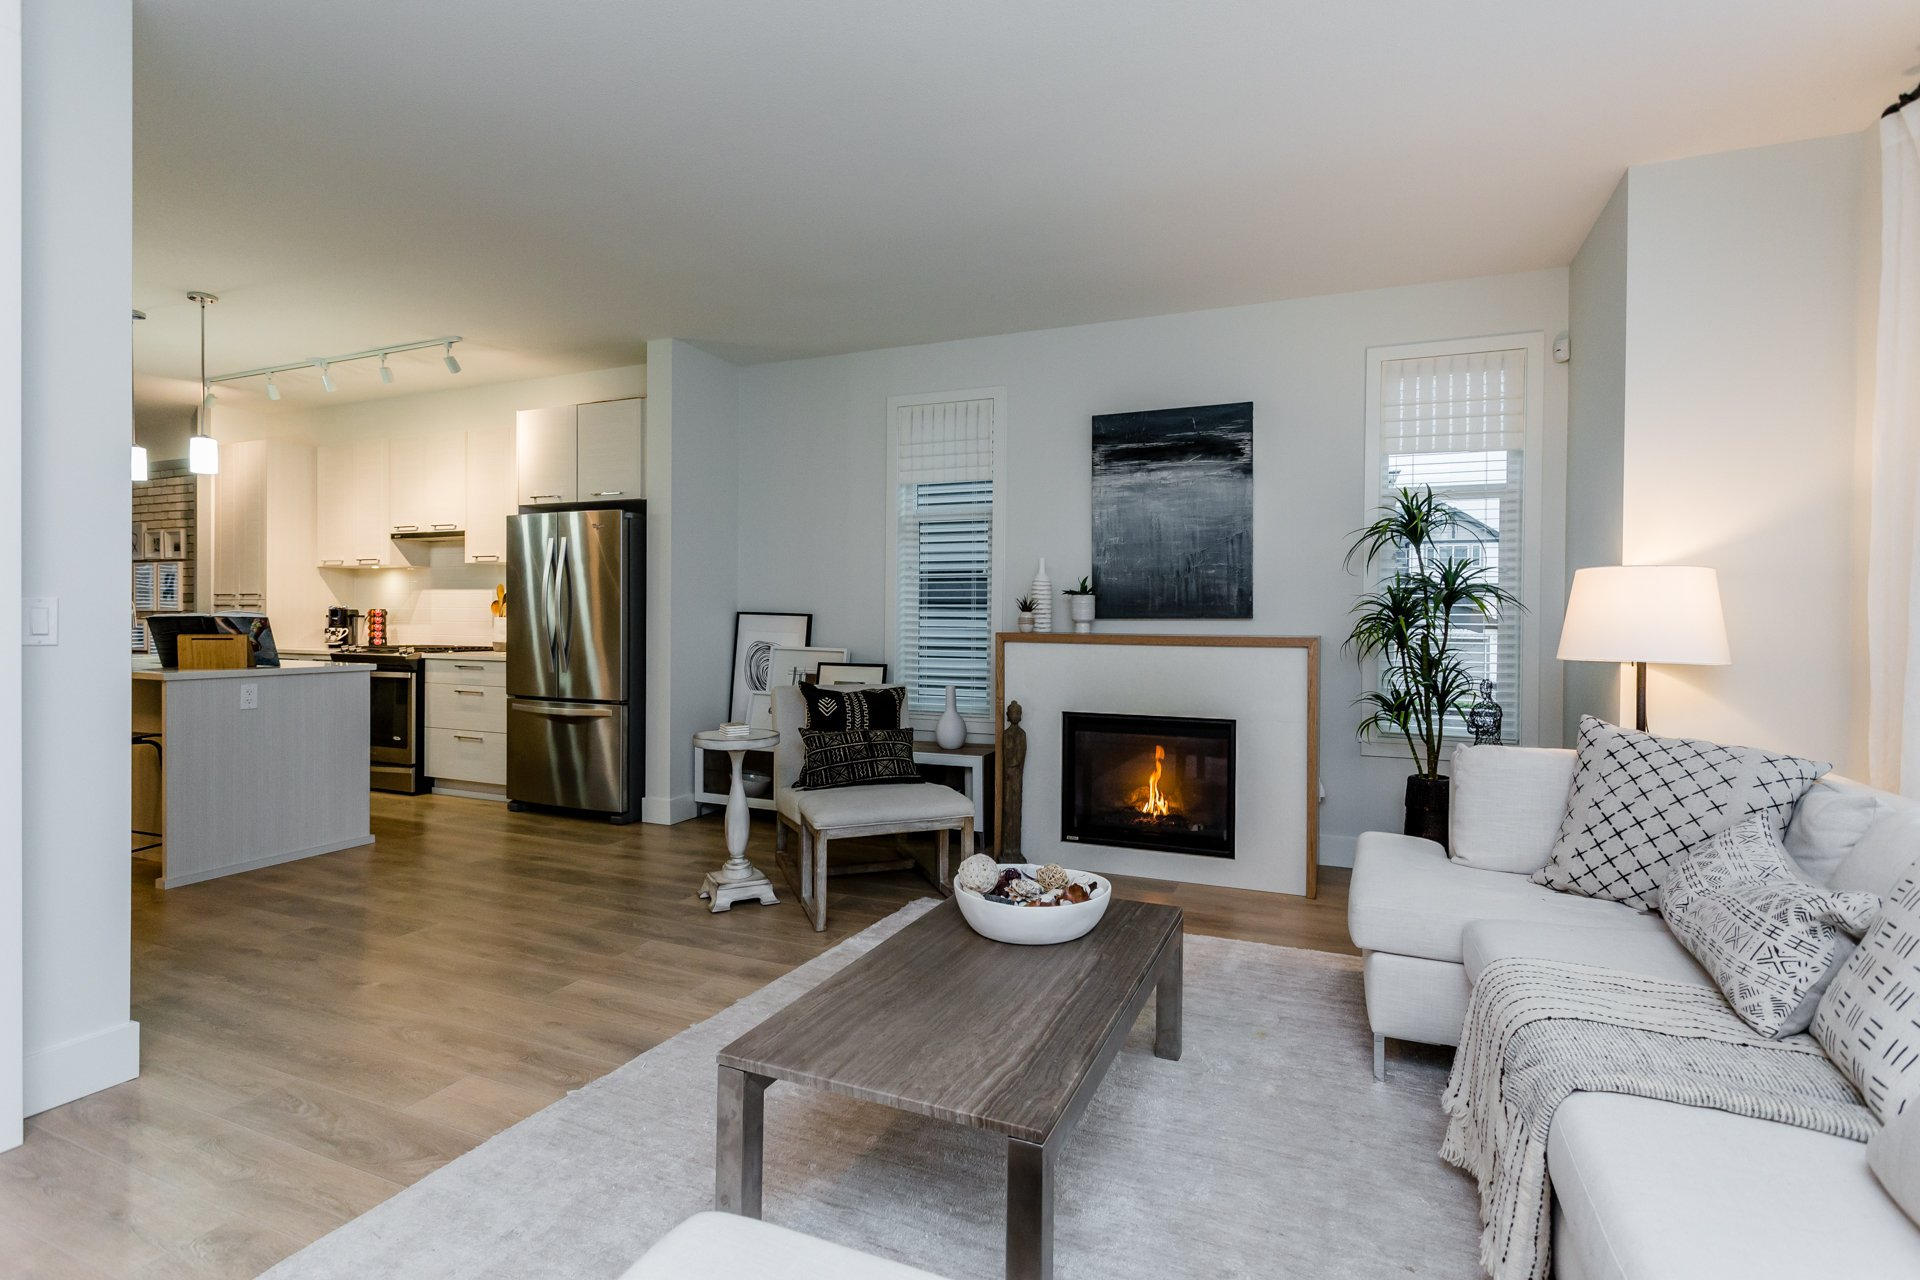 """Photo 19: Photos: 8 8217 204B Street in Langley: Willoughby Heights Townhouse for sale in """"EVERLY GREEN"""" : MLS®# R2236678"""